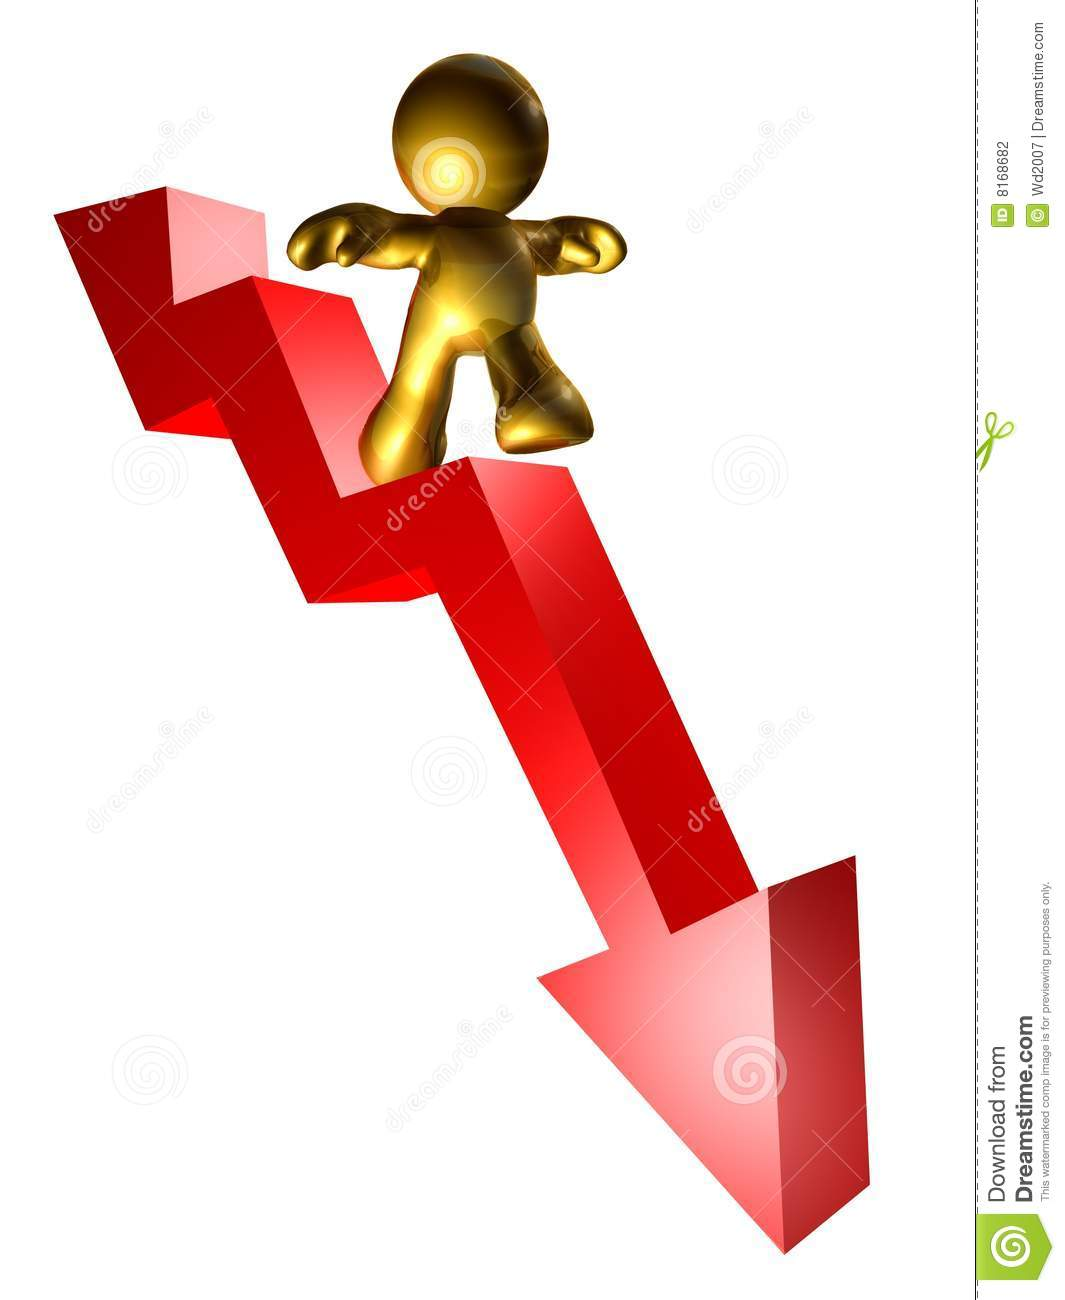 Riding The Down Trend Arrow Stock Illustration ...